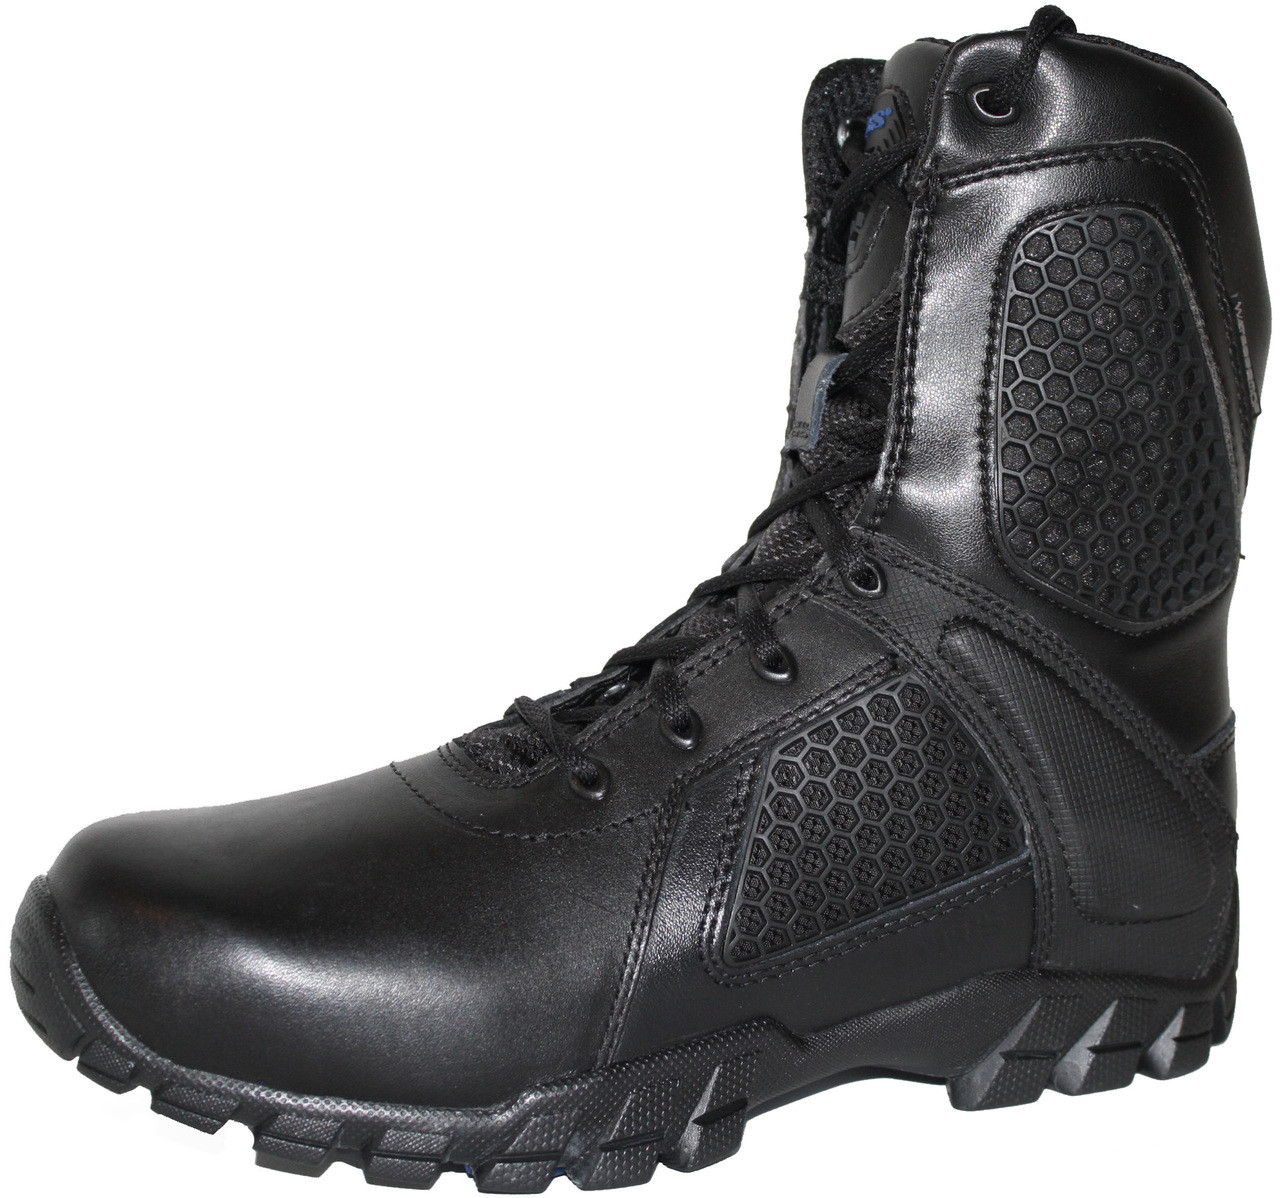 d1639e5d110 Bates 7008-B Mens 8 Inch Strike Side Zip Waterproof Tactical Boot